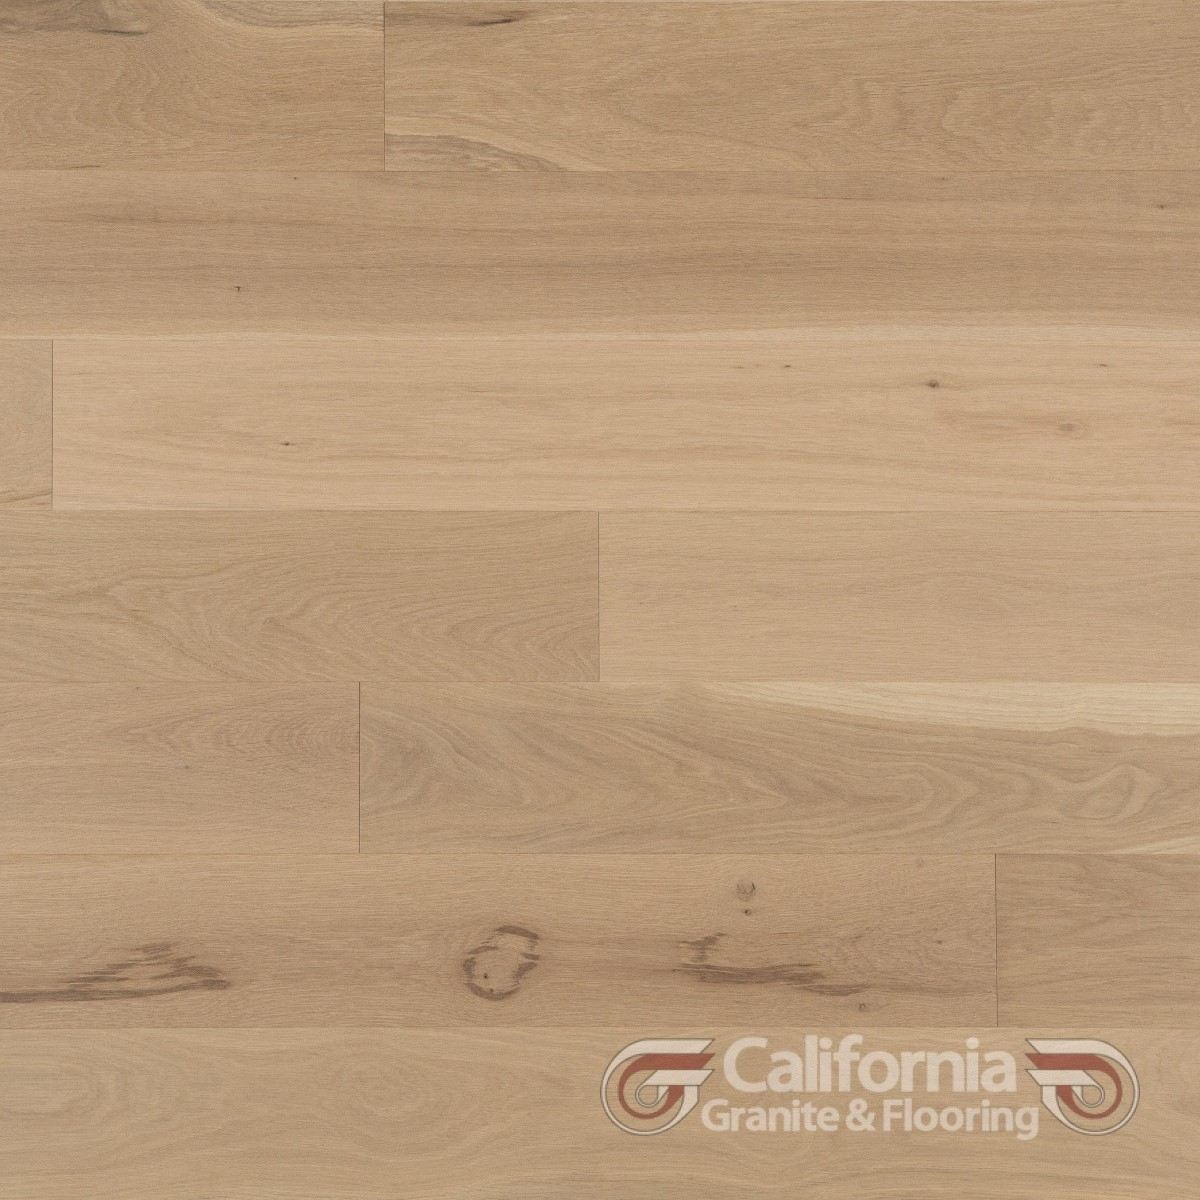 hardwood-flooring-white-oak-white-mist-character-brushed-herringbone-2